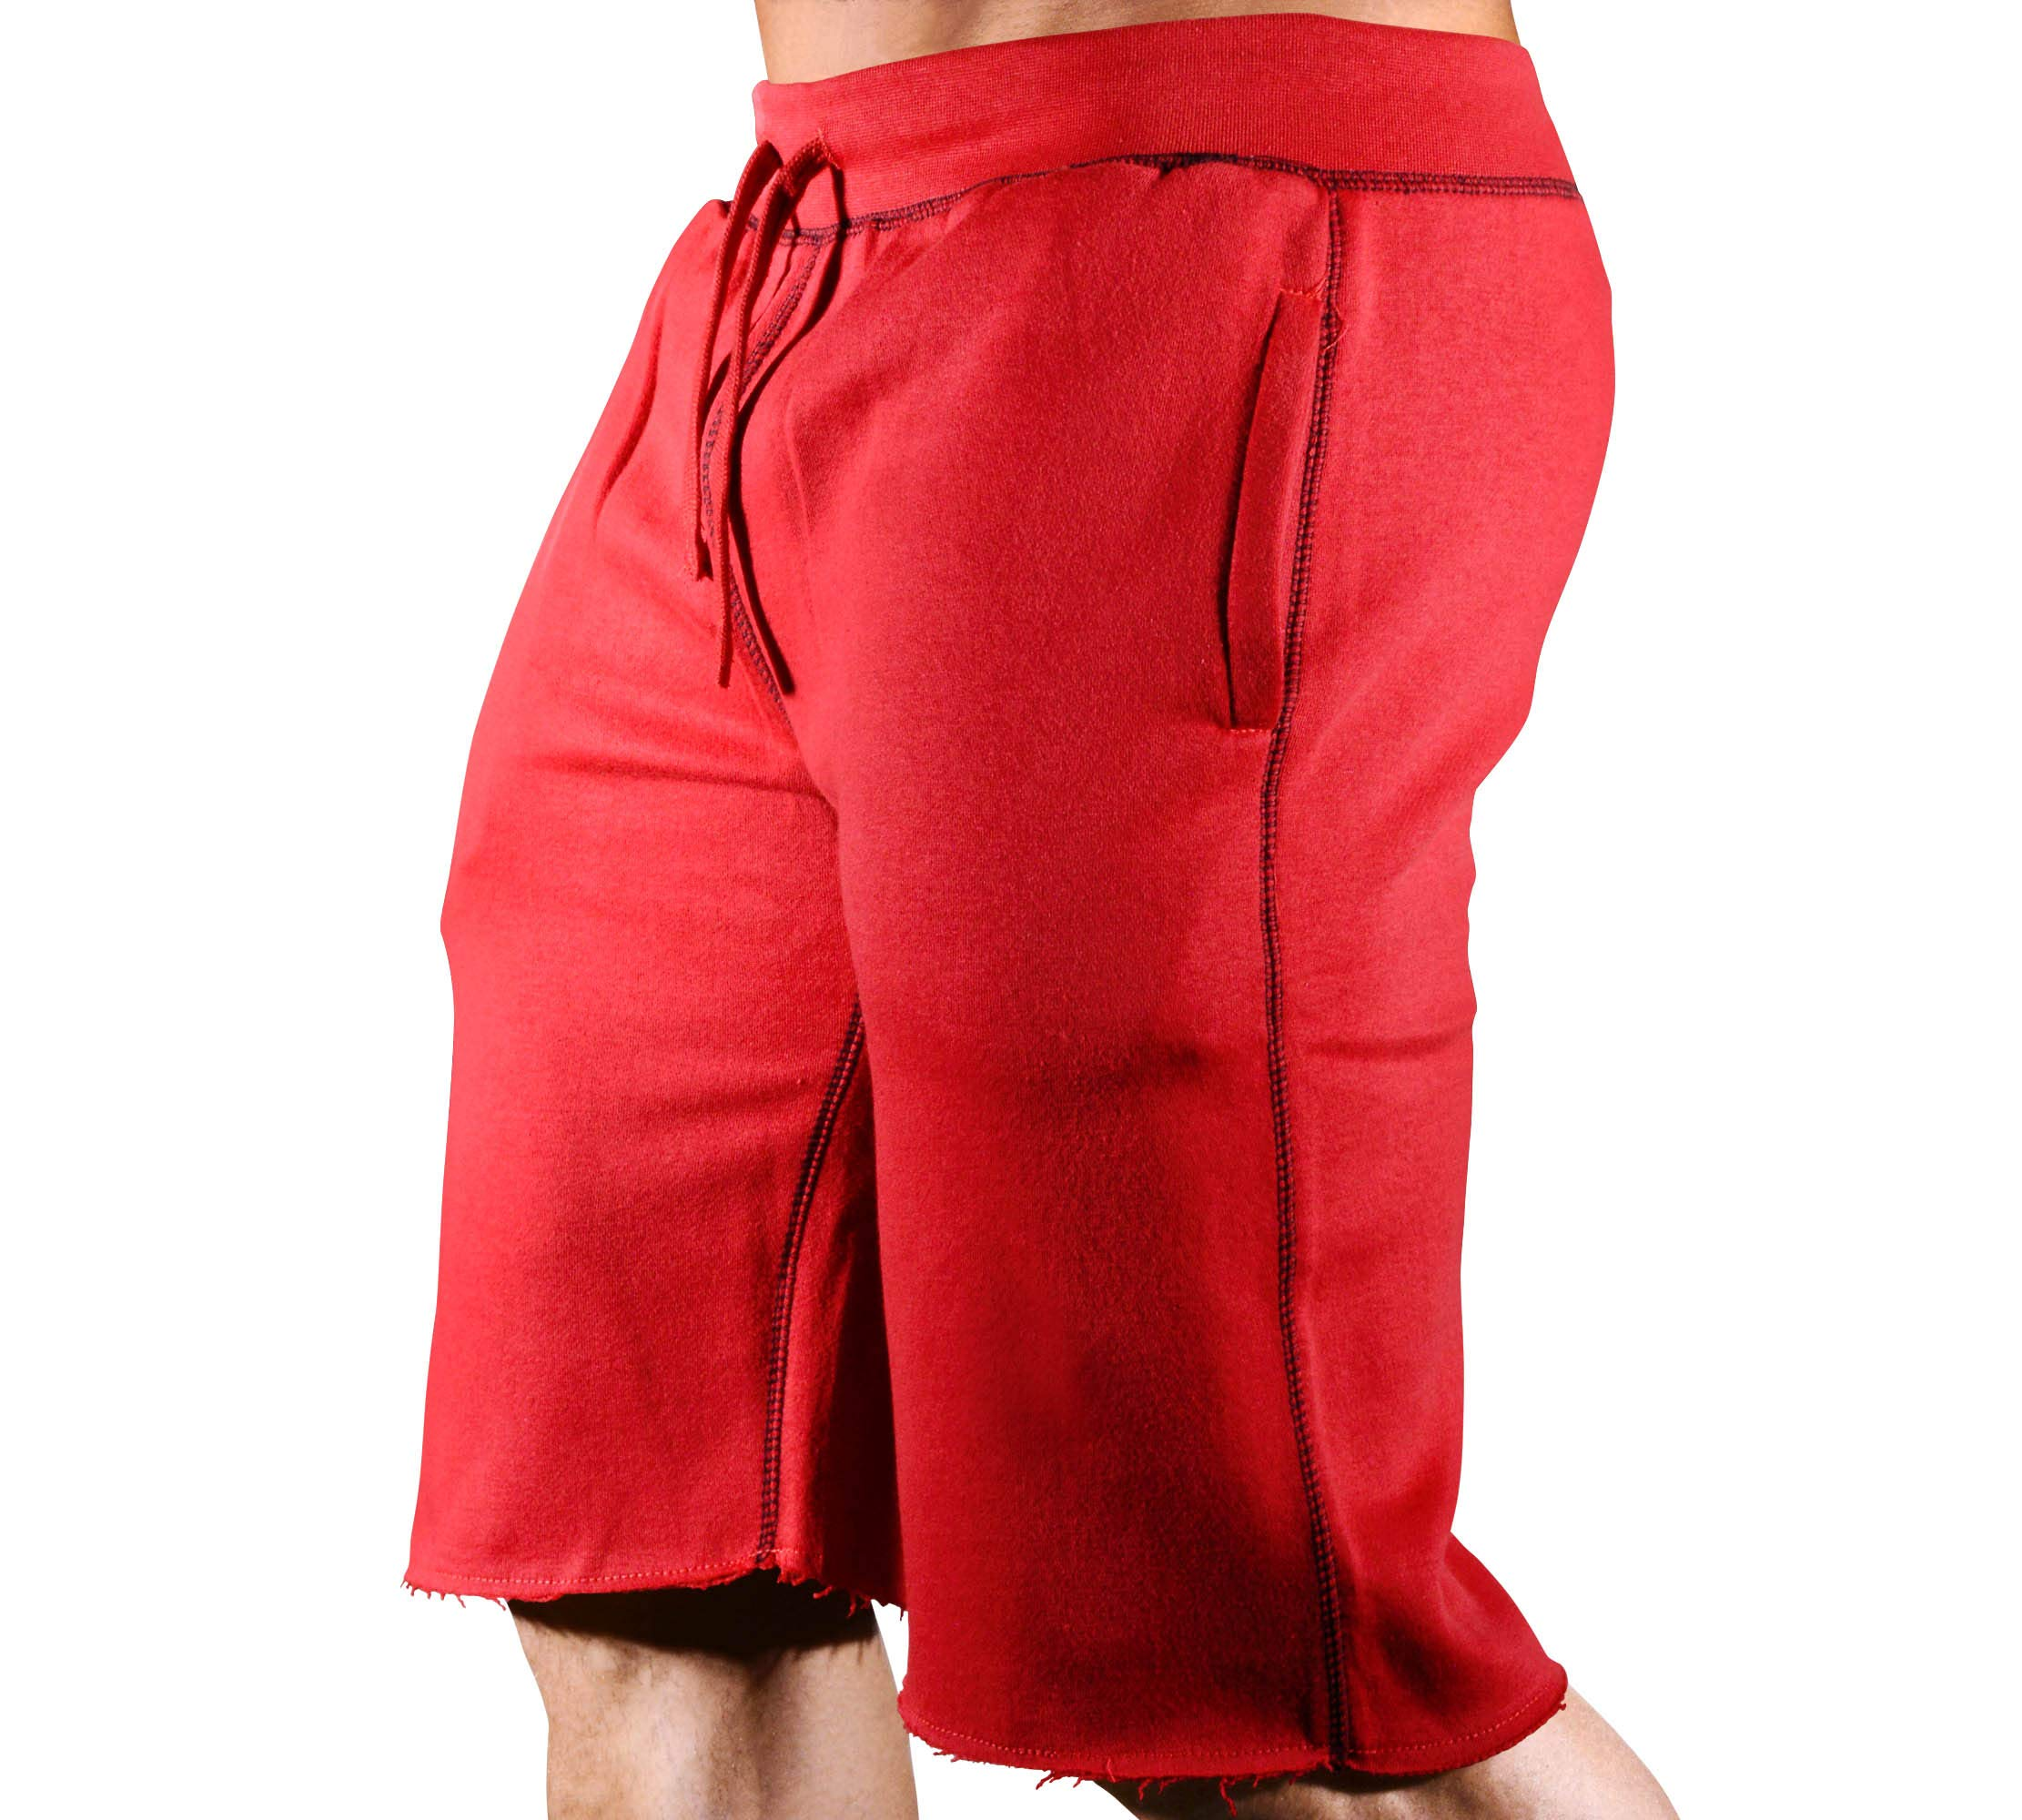 HRD LVN Mens Workout Shorts Classic (Small, Red SweatShorts) by Monsta Clothing Co.